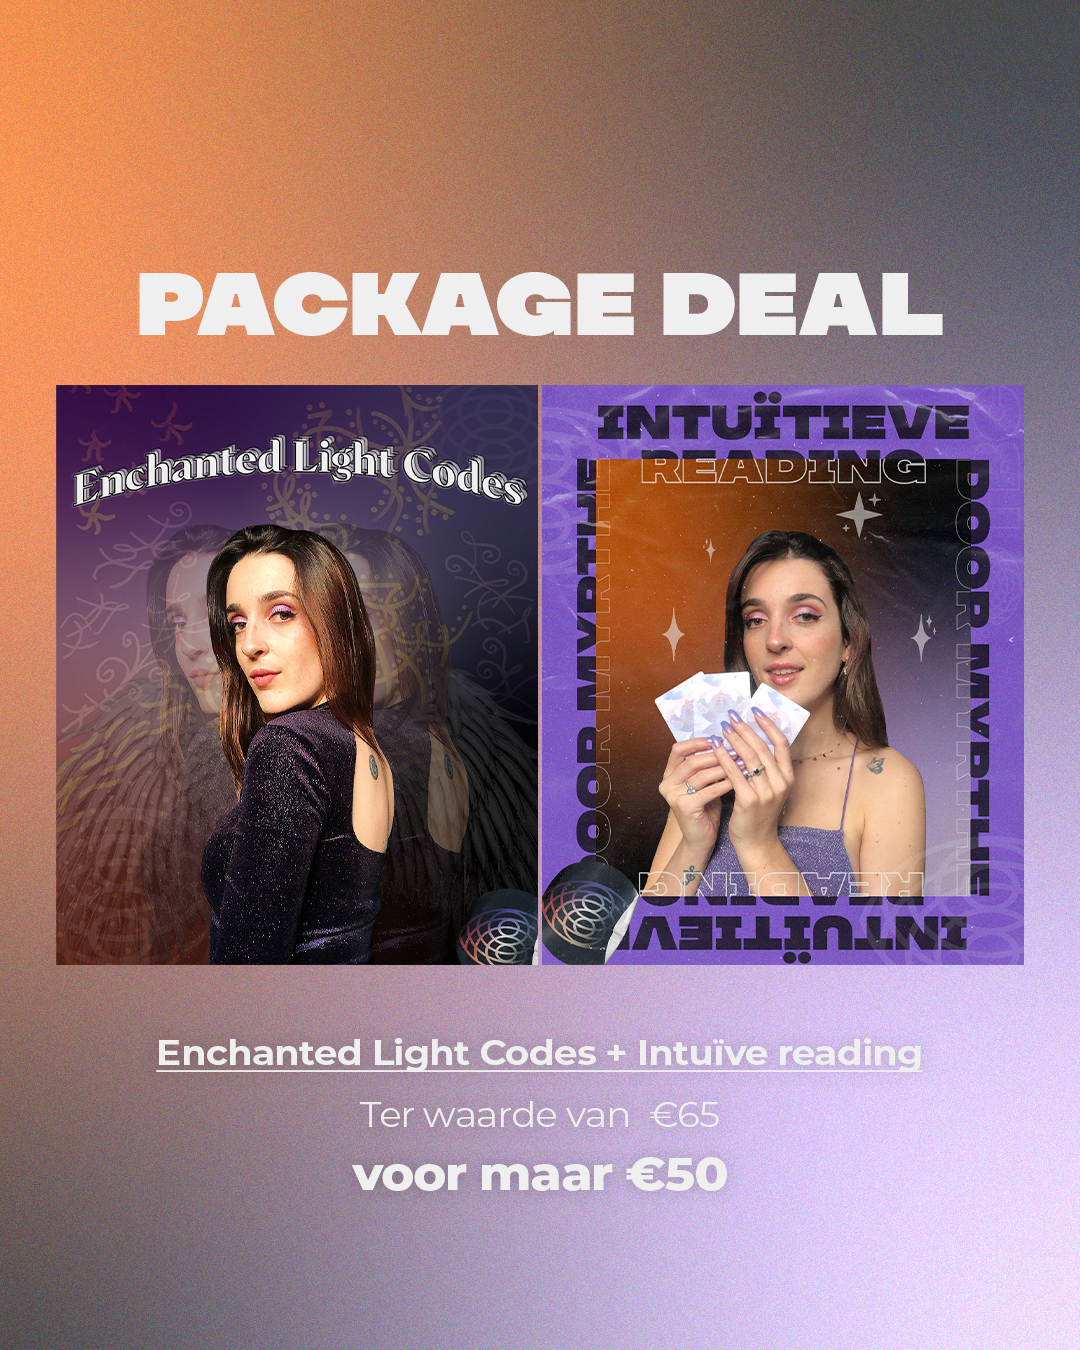 PACKAGE DEAL: Enchanted Lights Codes + Intuïtieve Reading